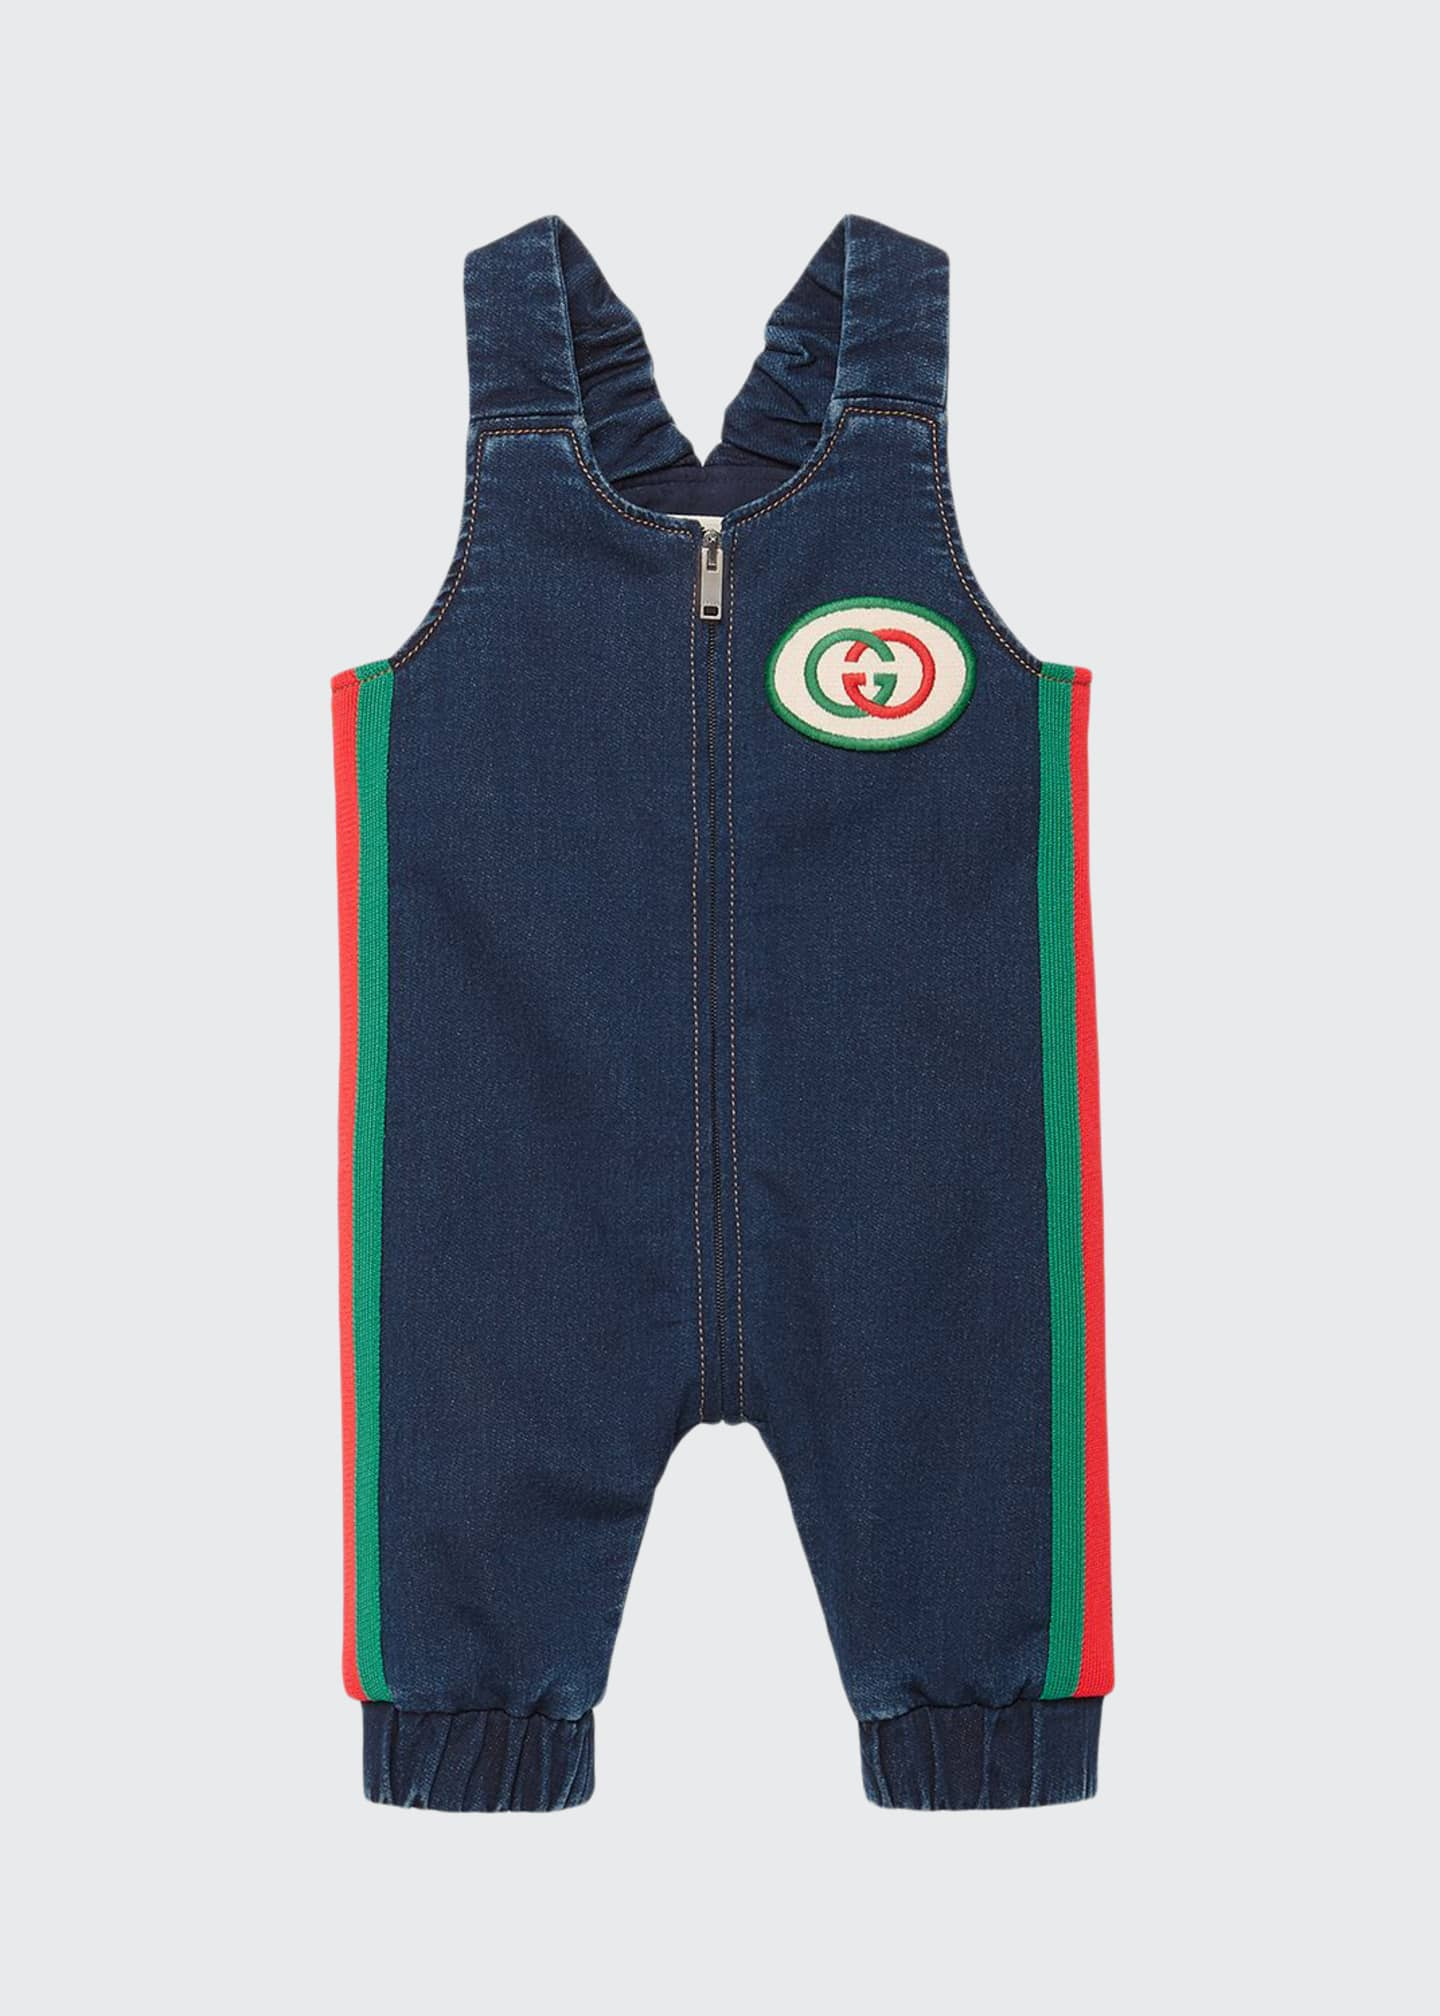 Gucci Denim Overalls w/ Web Trim & Logo